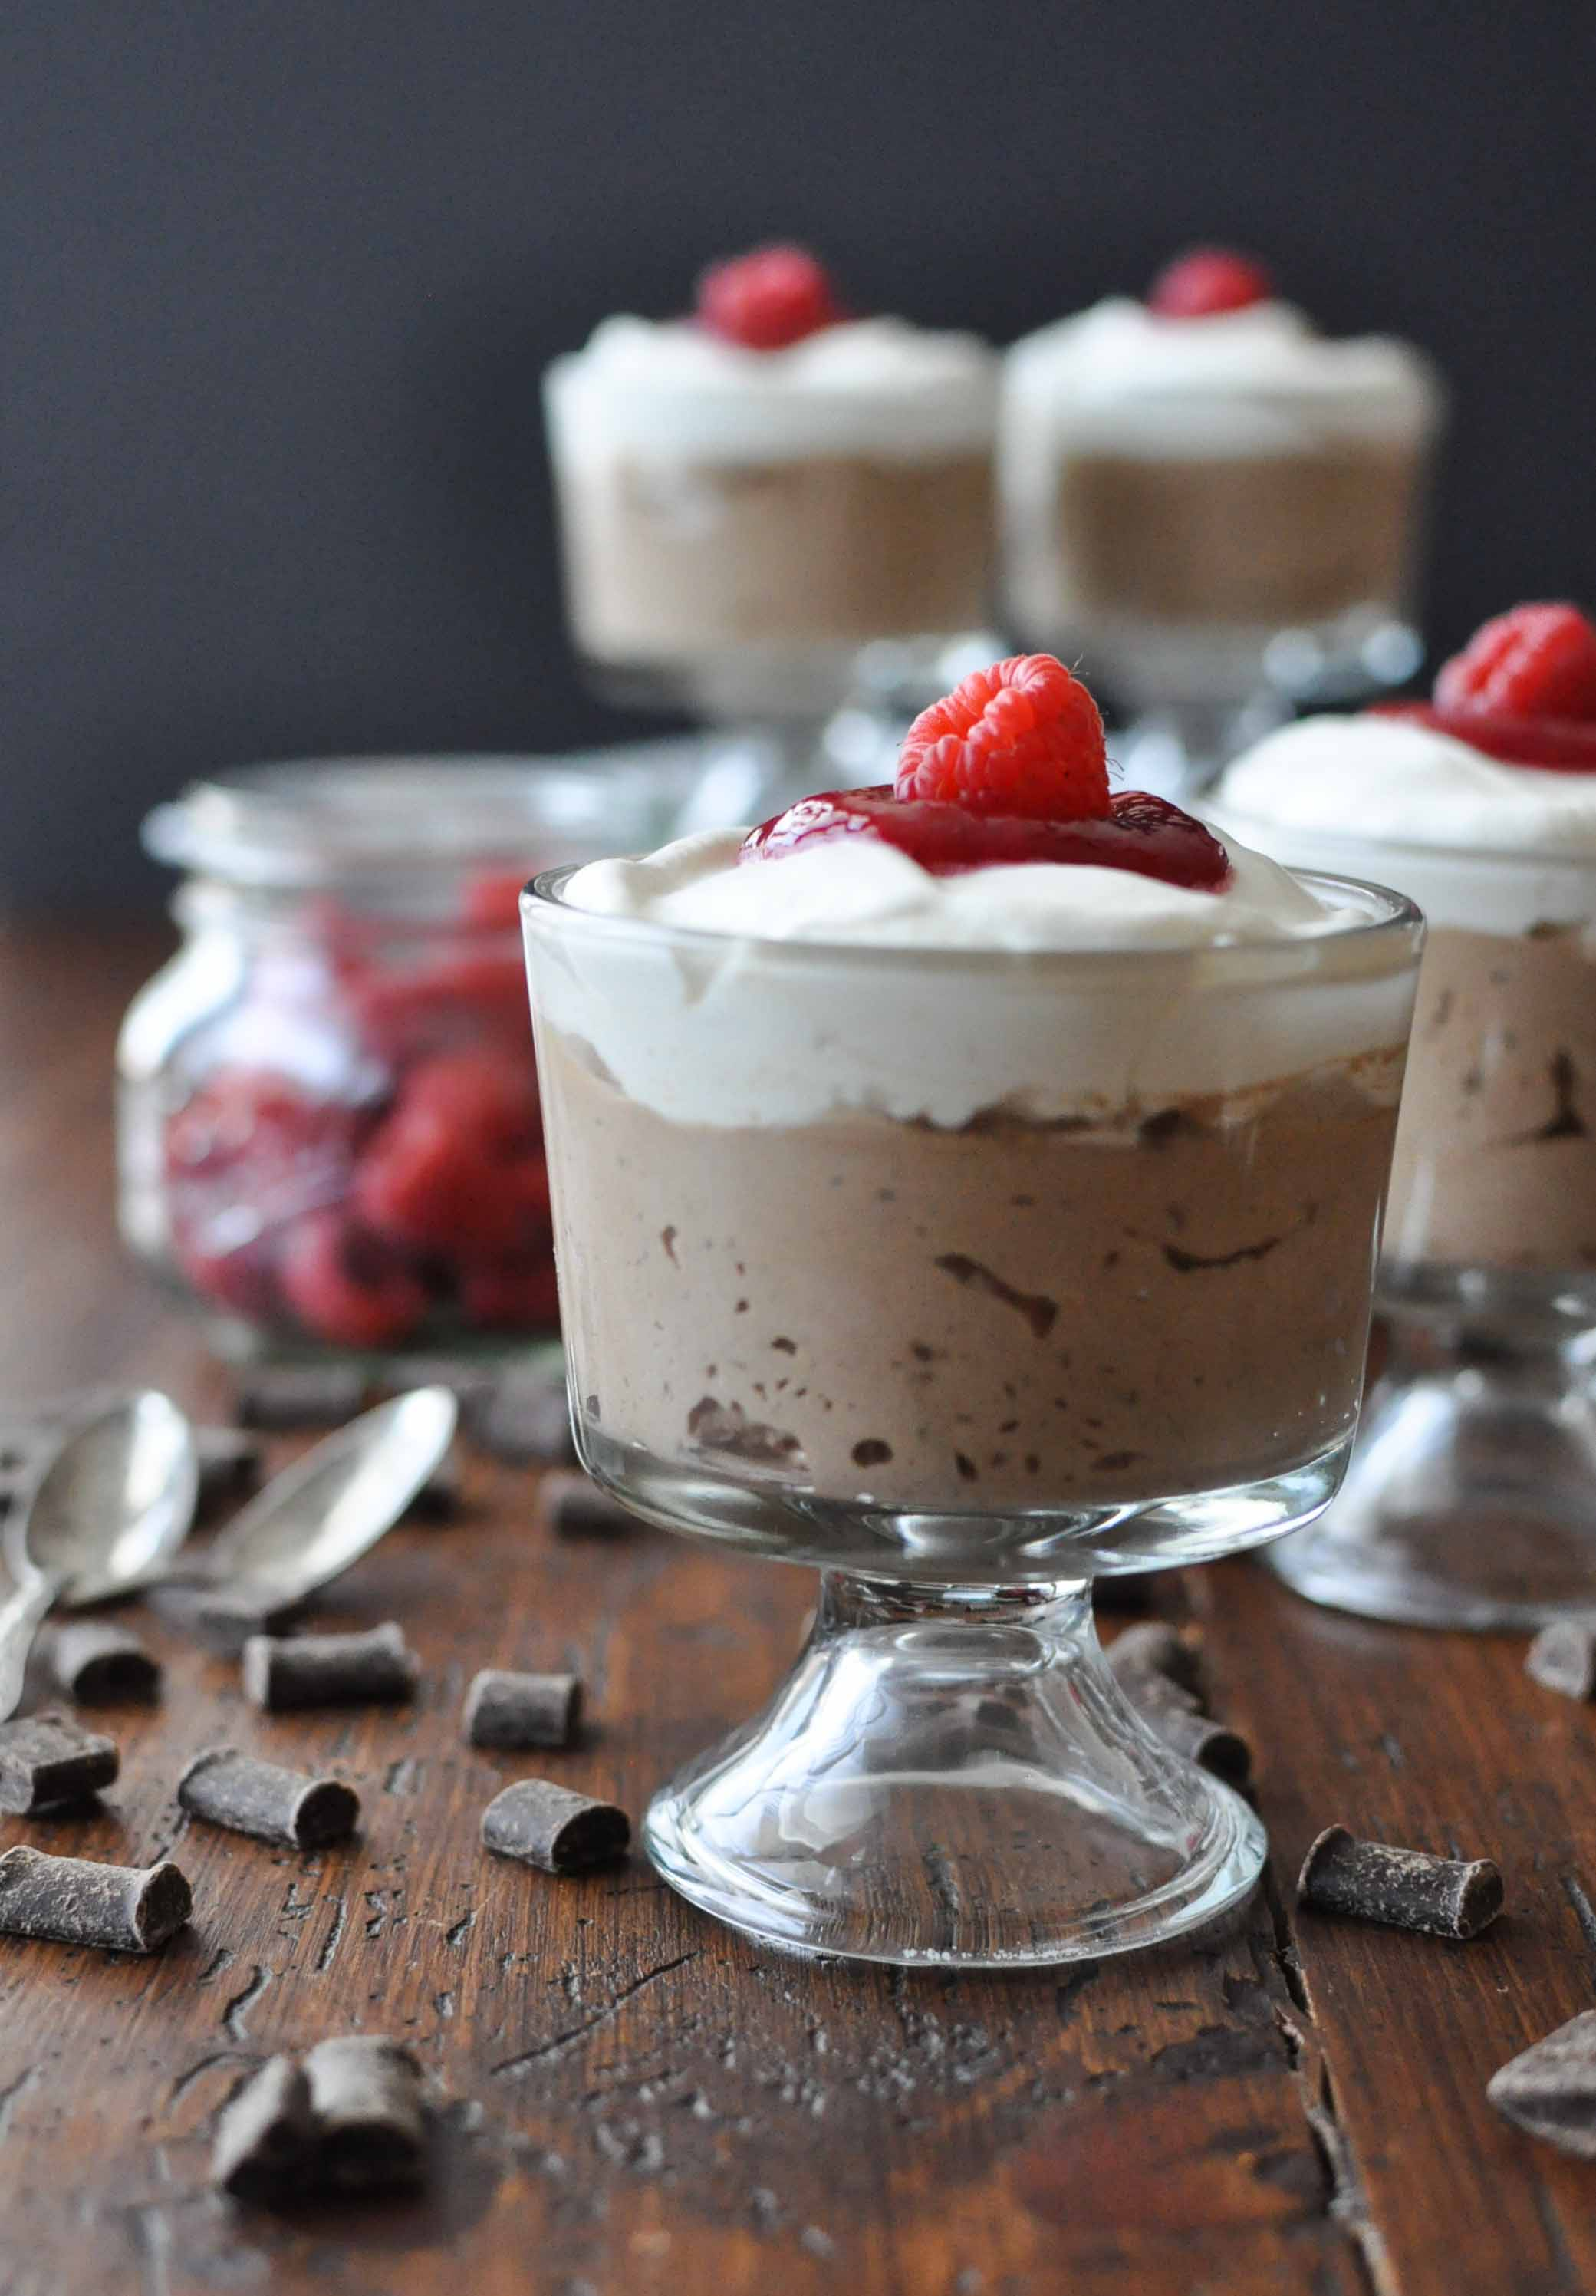 140220_Chocolate_Mousse-1